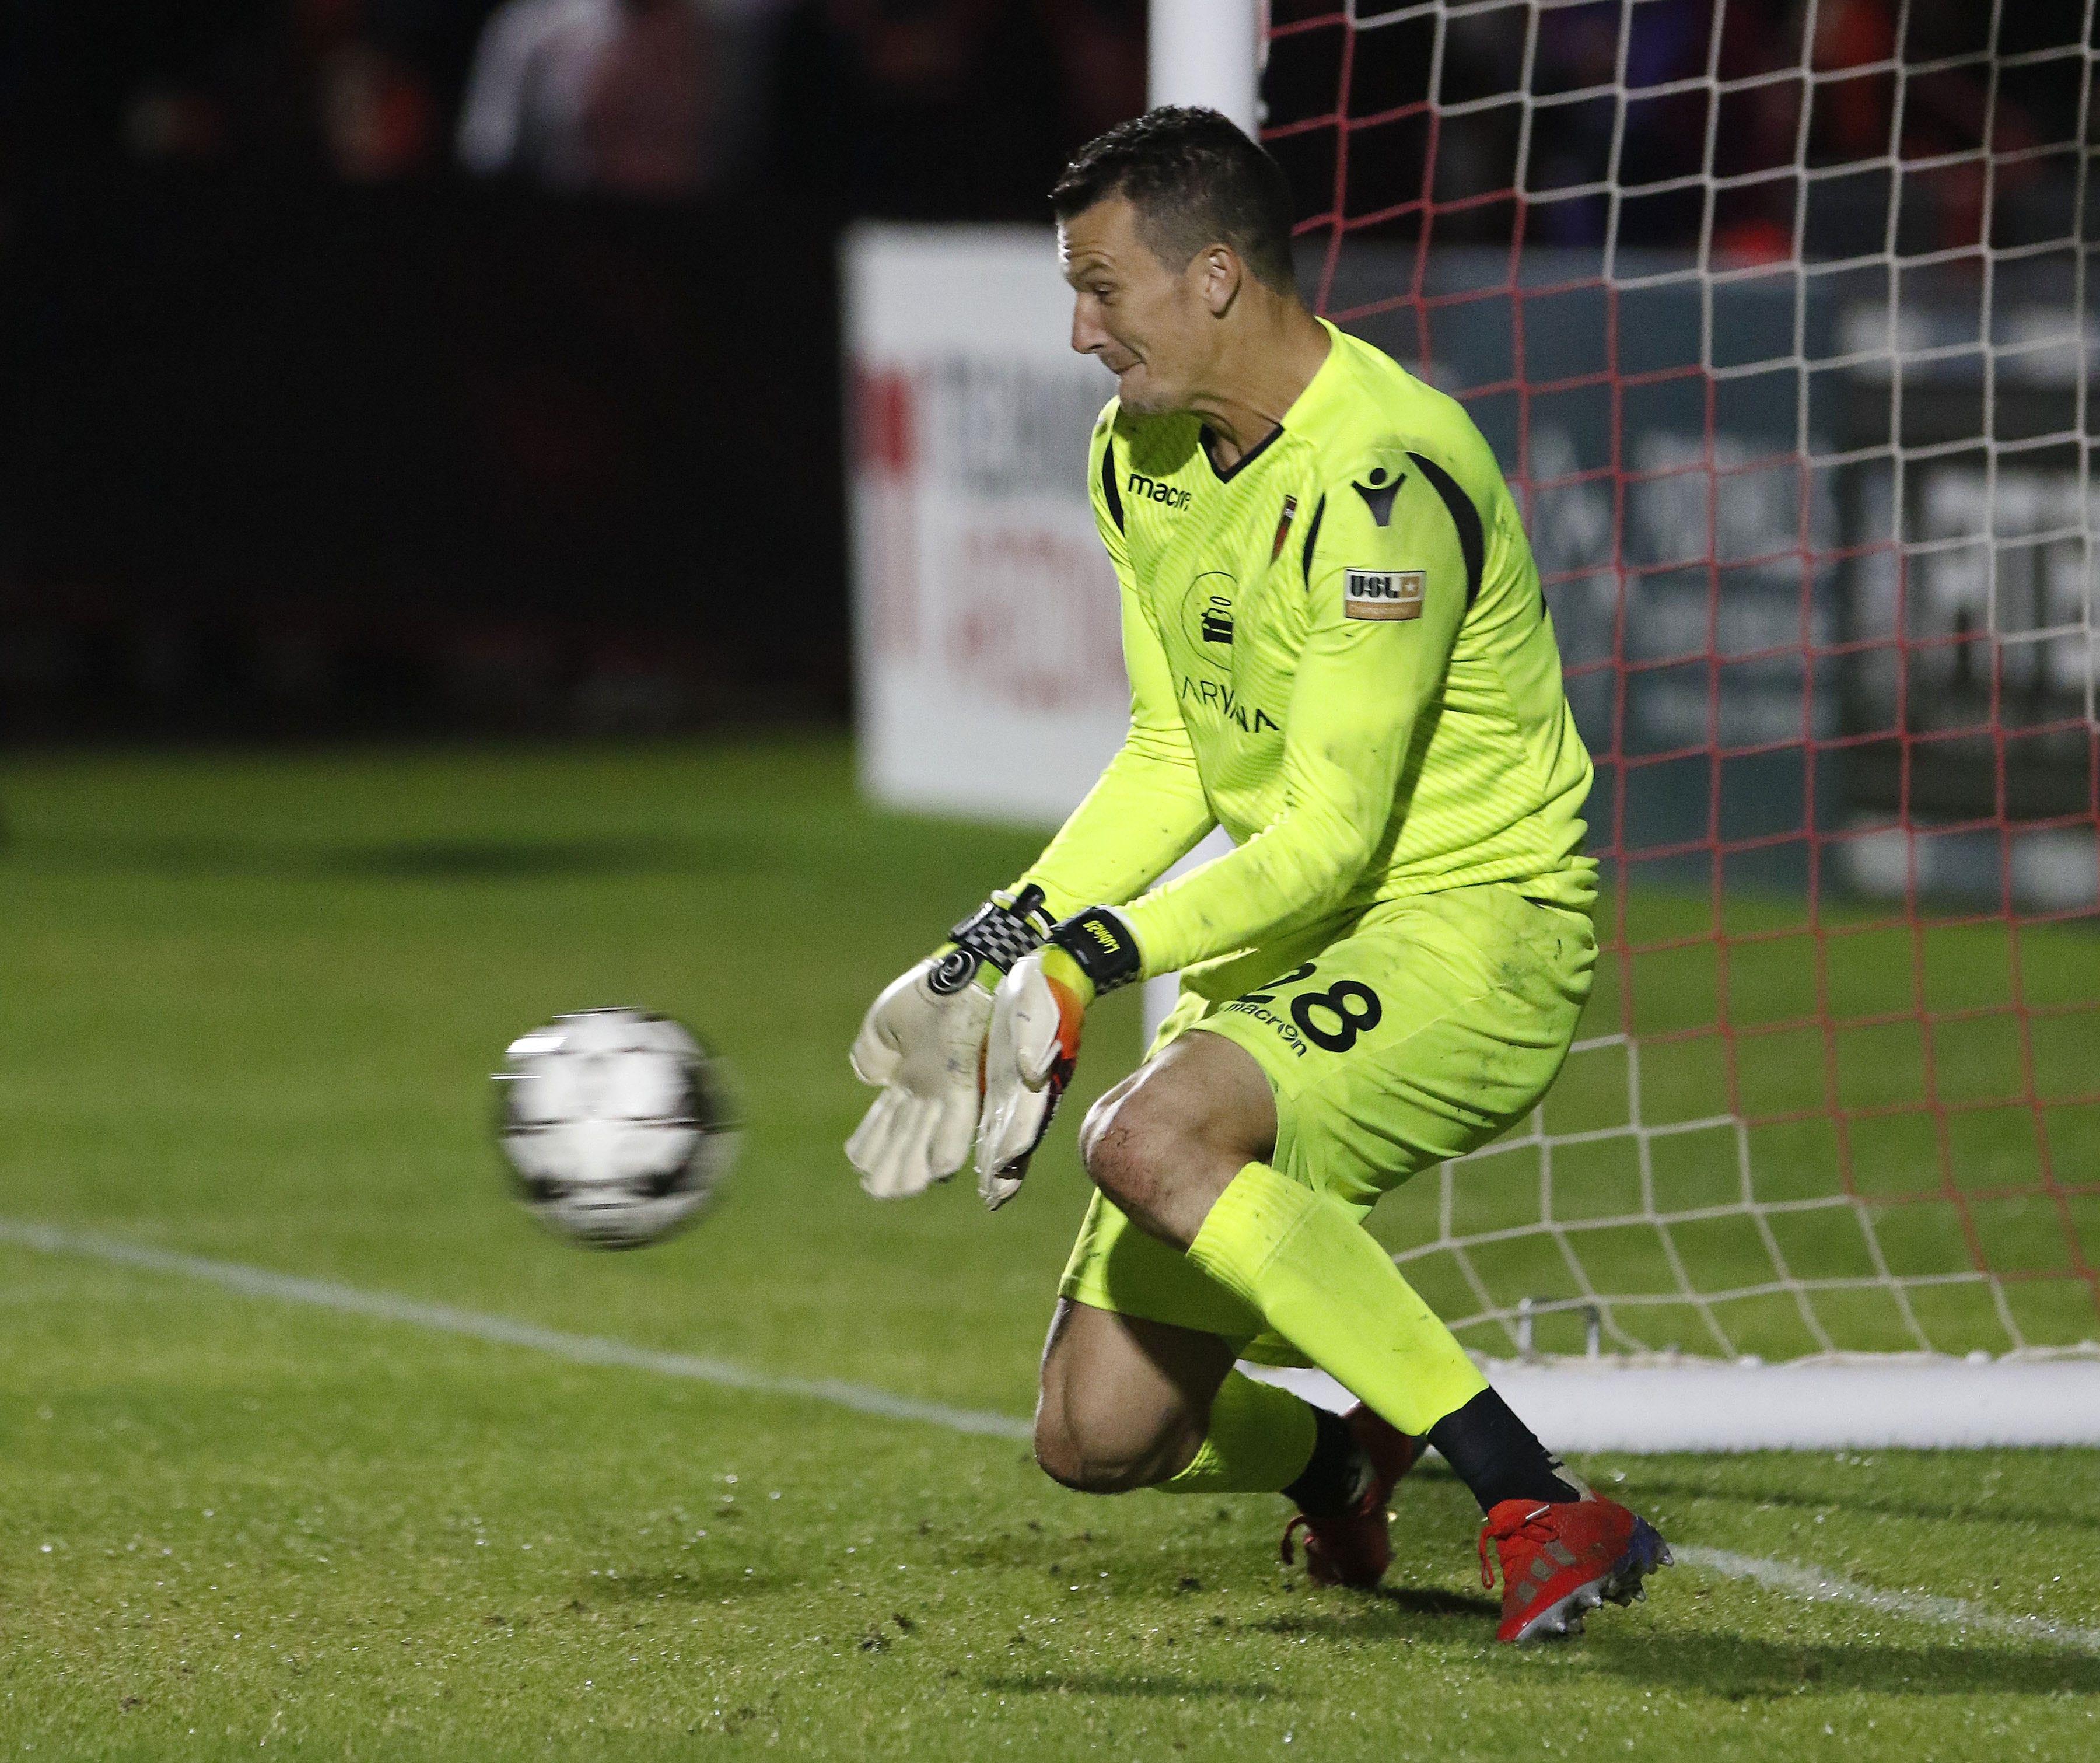 USL Championship Final between Phoenix Rising FC and Tampa Bay Rowdies canceled